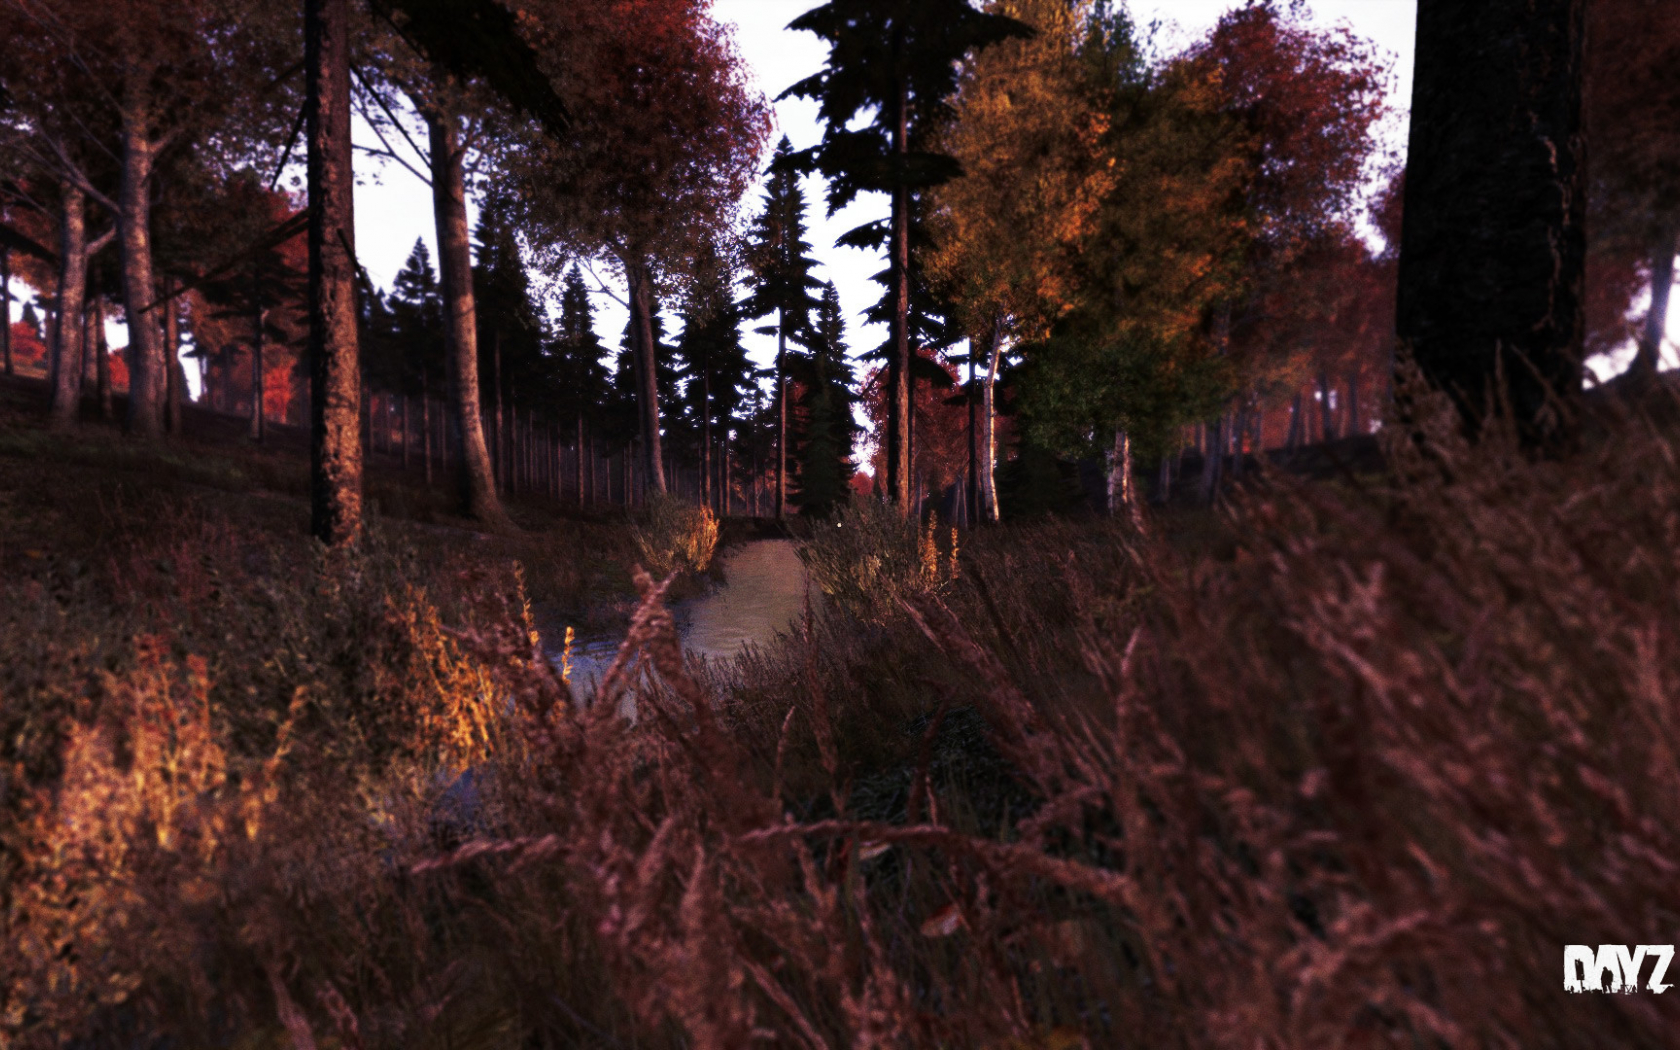 Free Download Dayz Standalone Wallpapers Dayz Tv 1920x1080